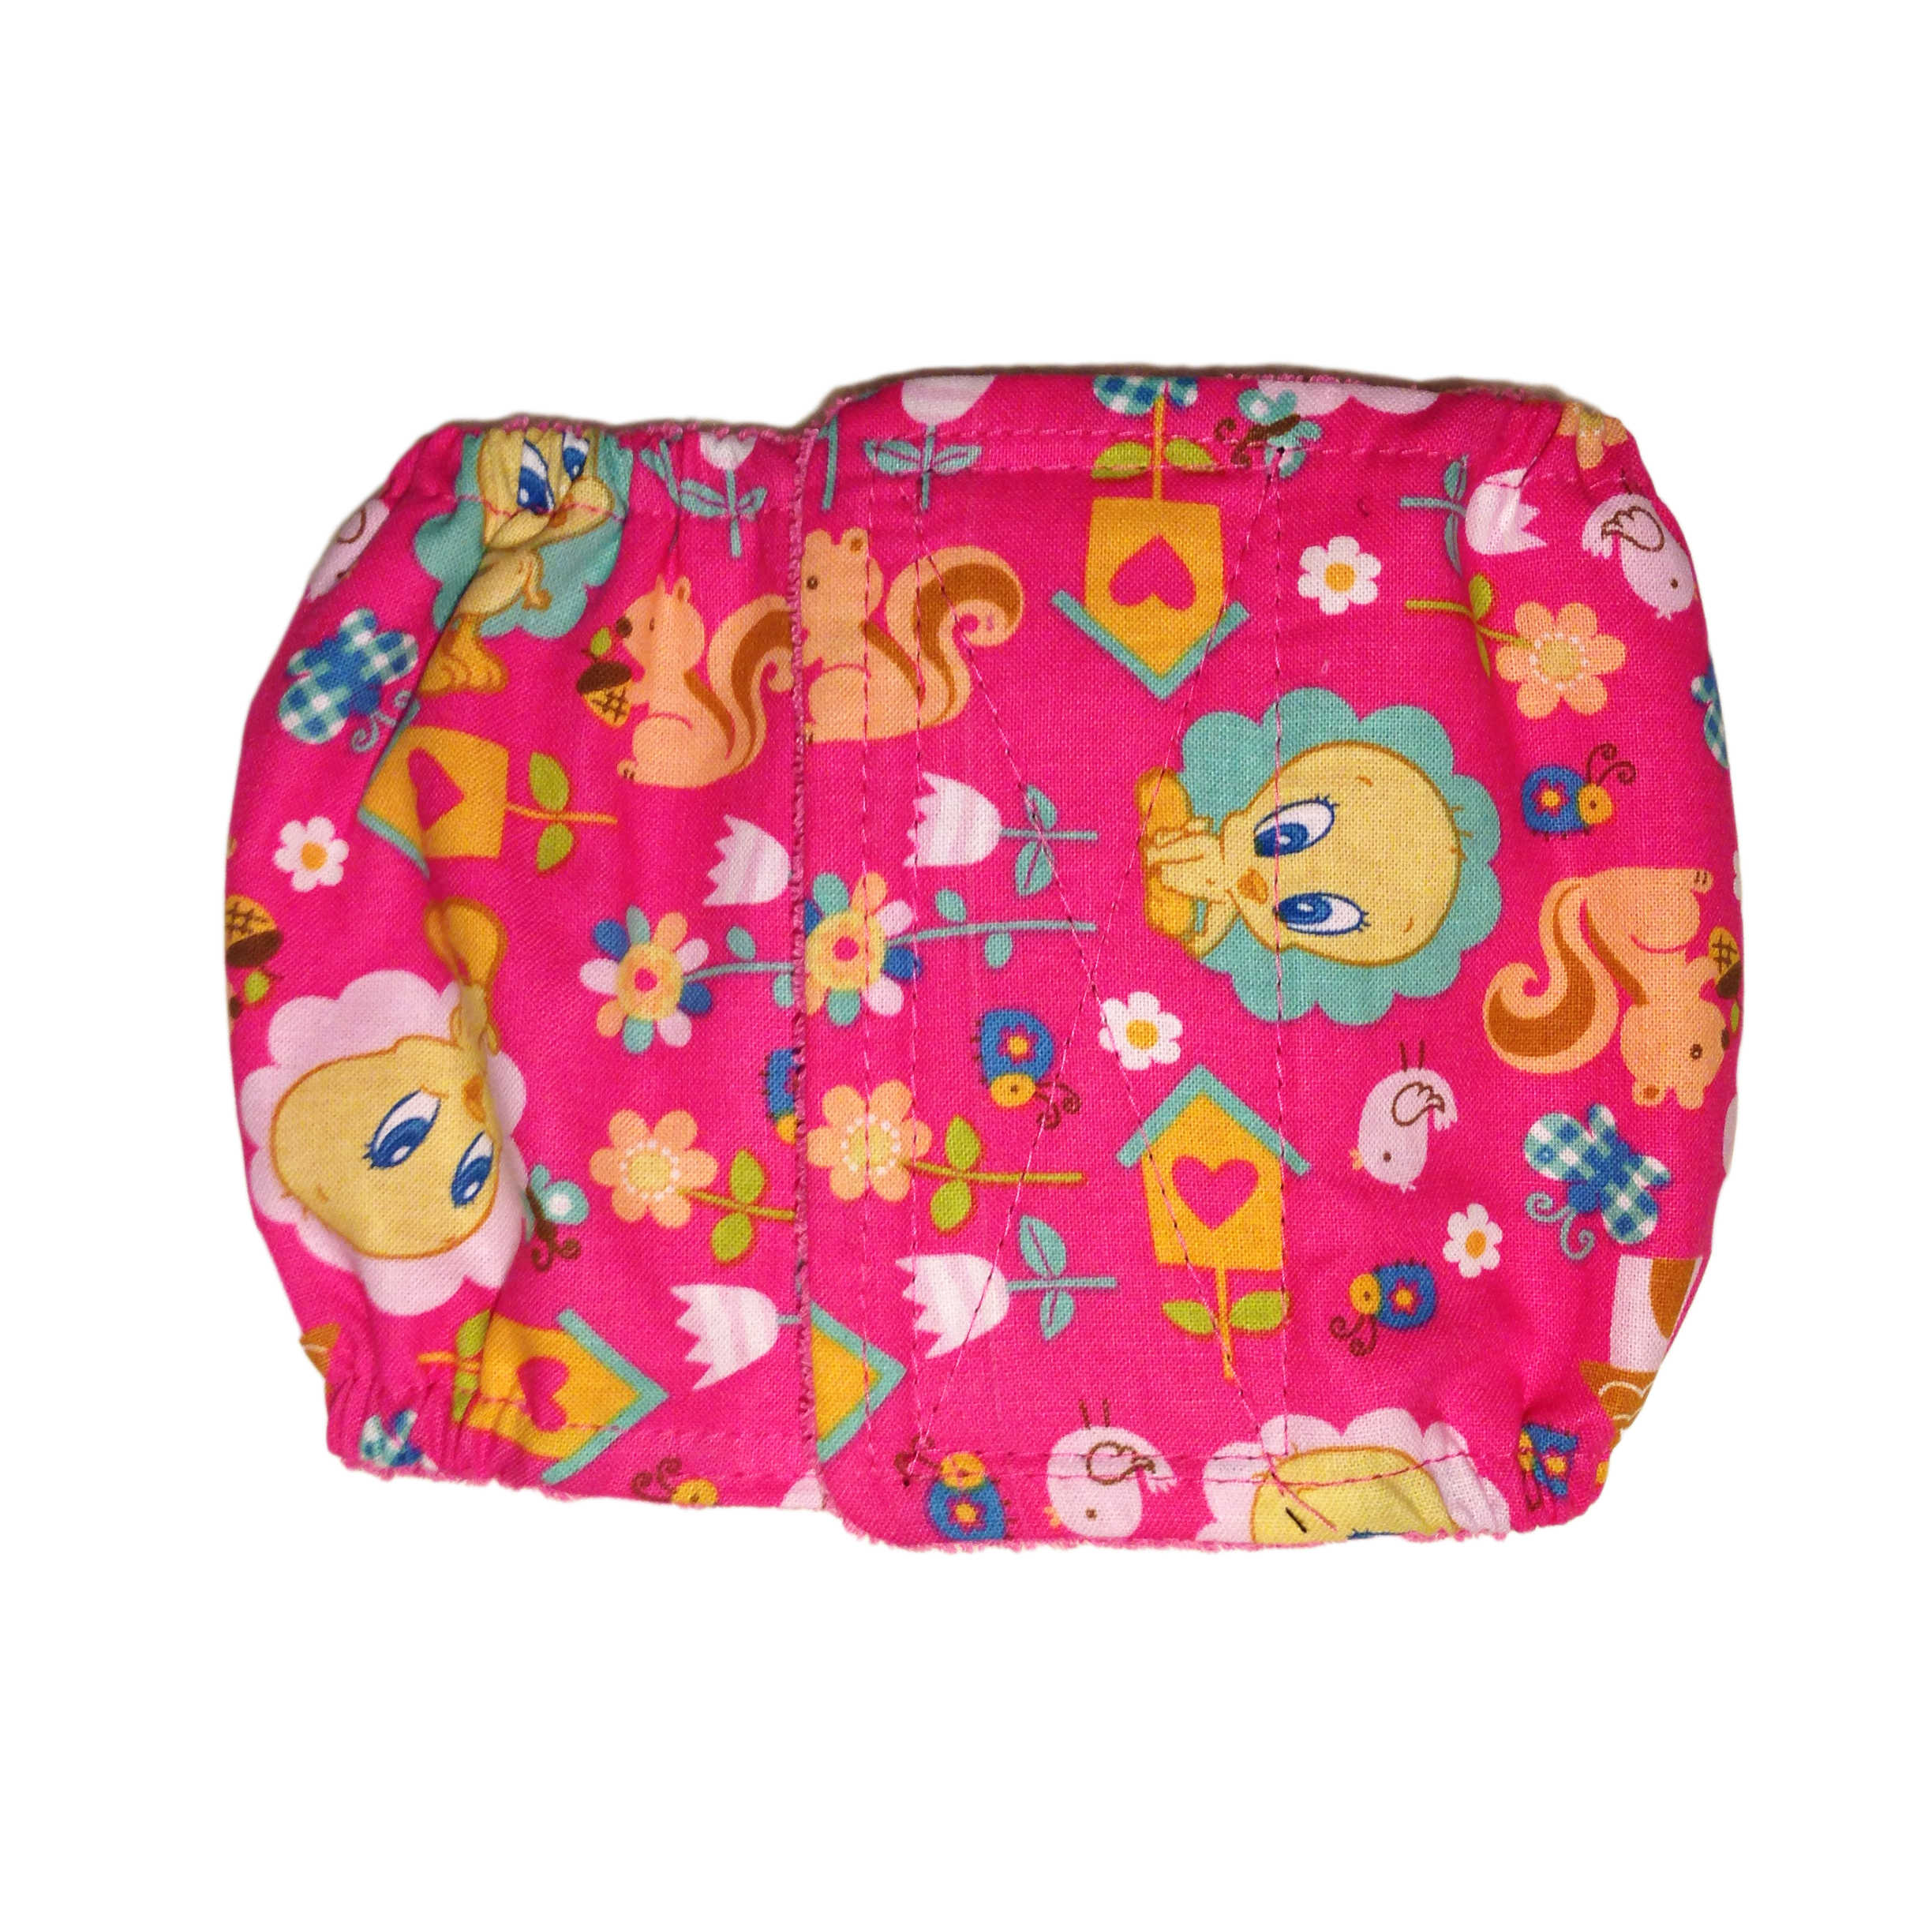 barkertime tweety bird on pink washable dog belly band male wrap. Black Bedroom Furniture Sets. Home Design Ideas